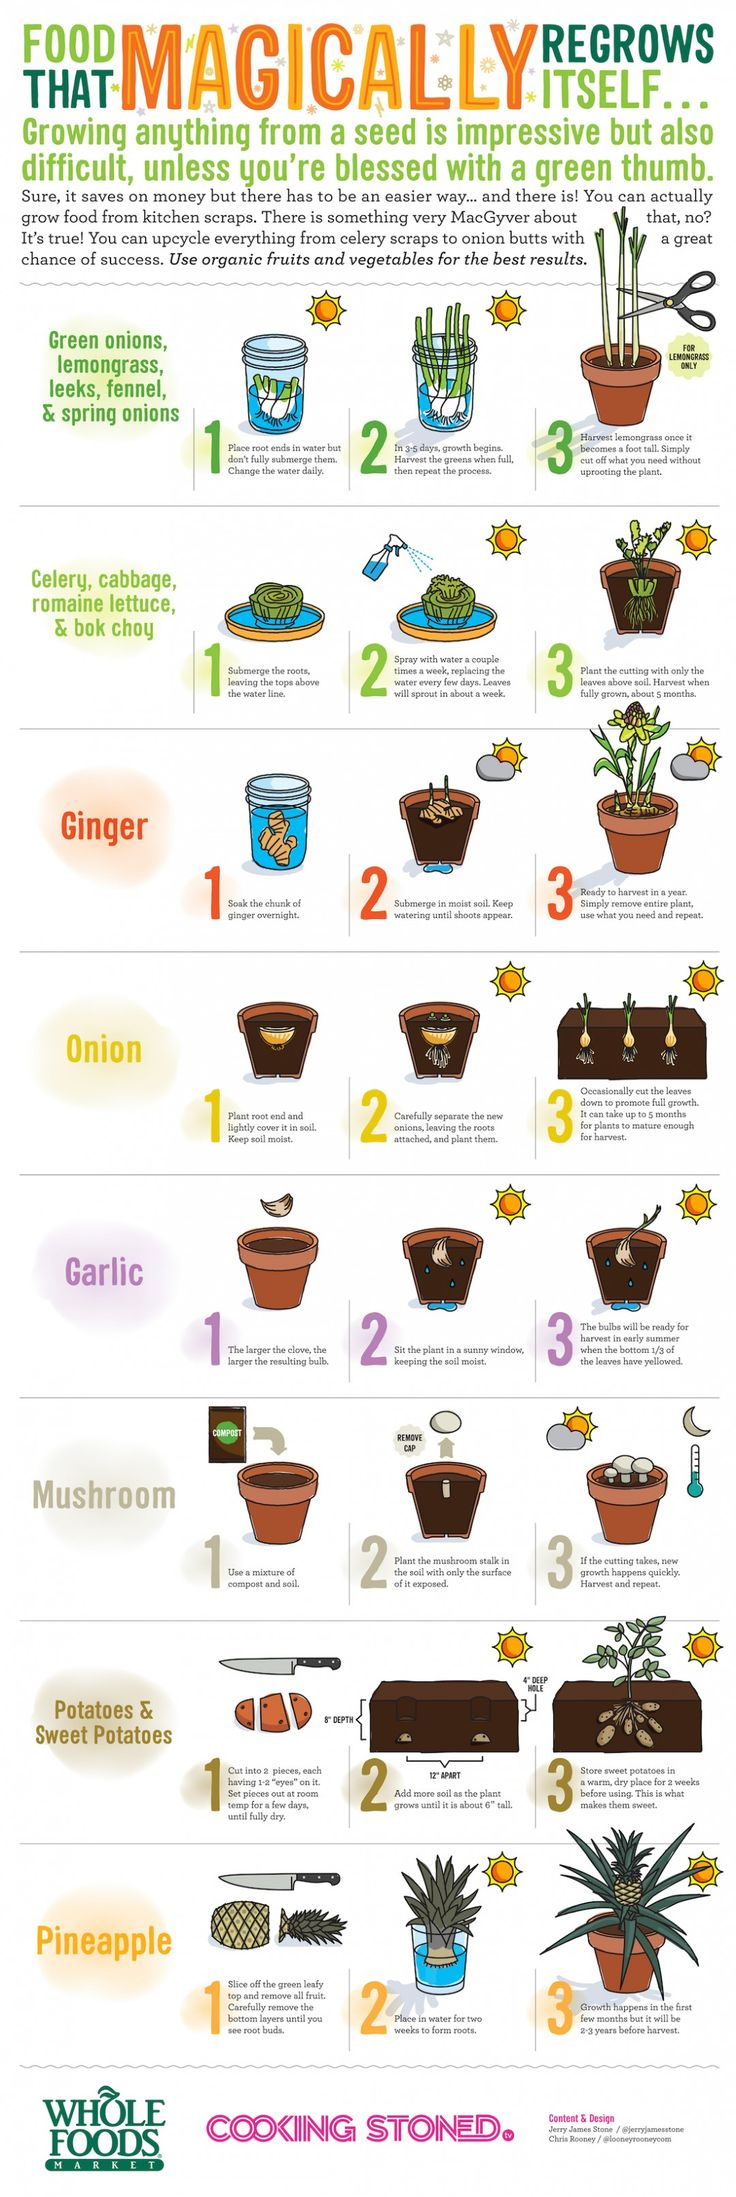 Foods that magically re-grow